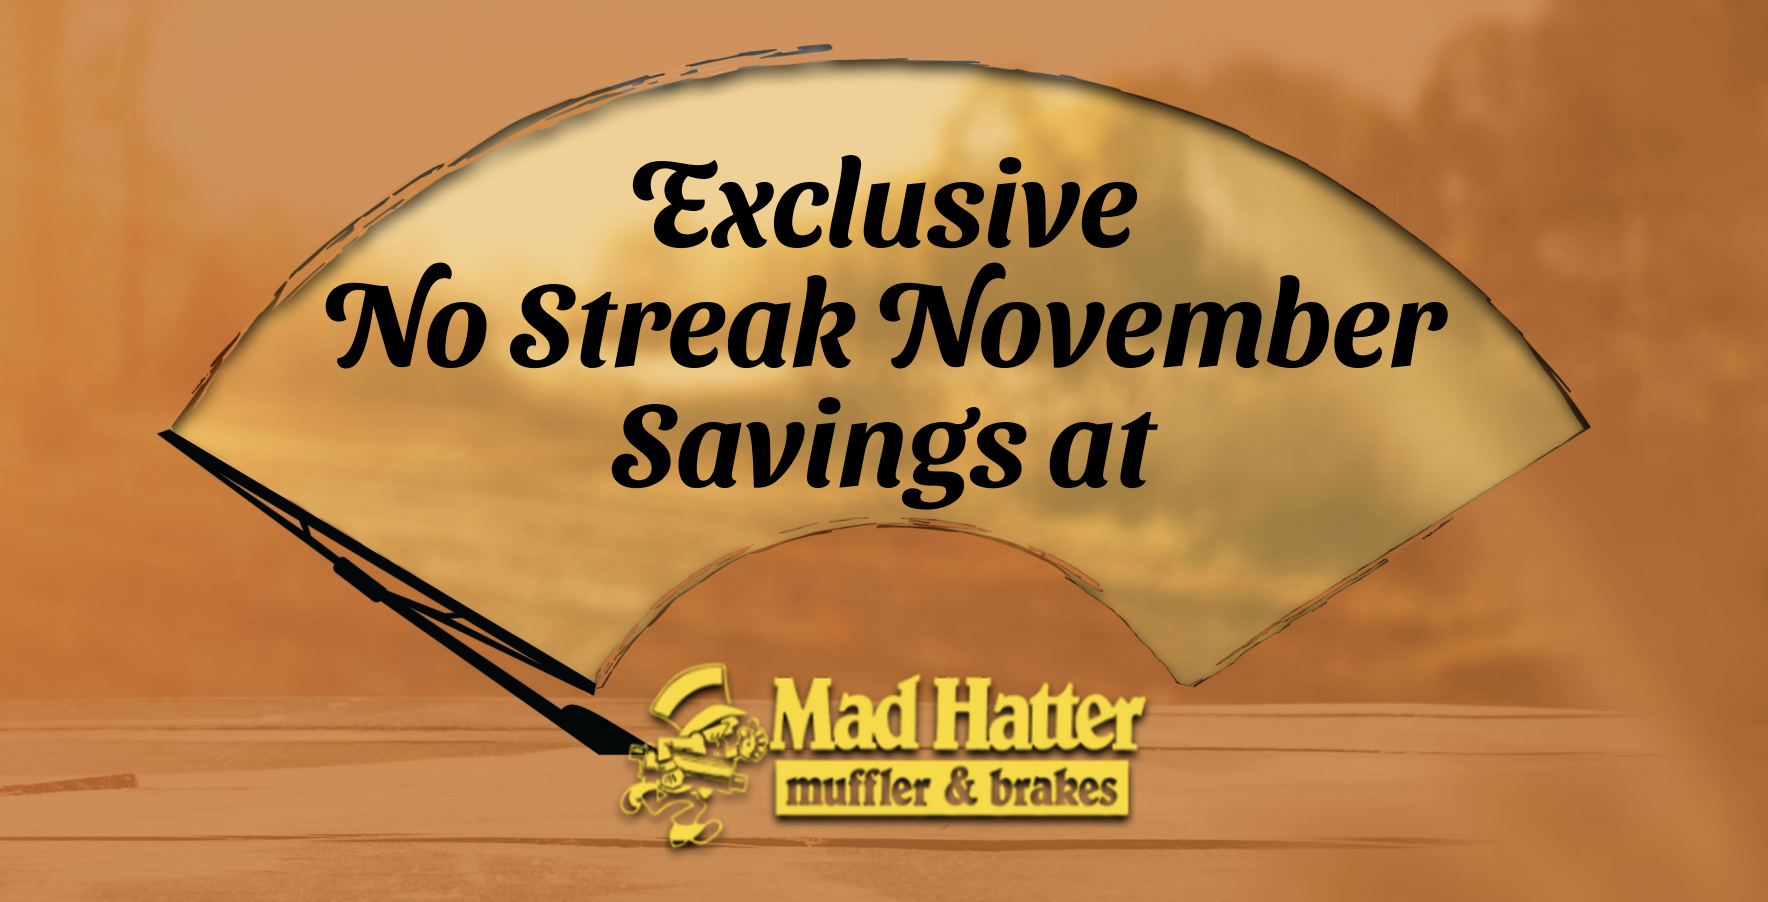 No Streak November is Here. Keeping Your View Clear!